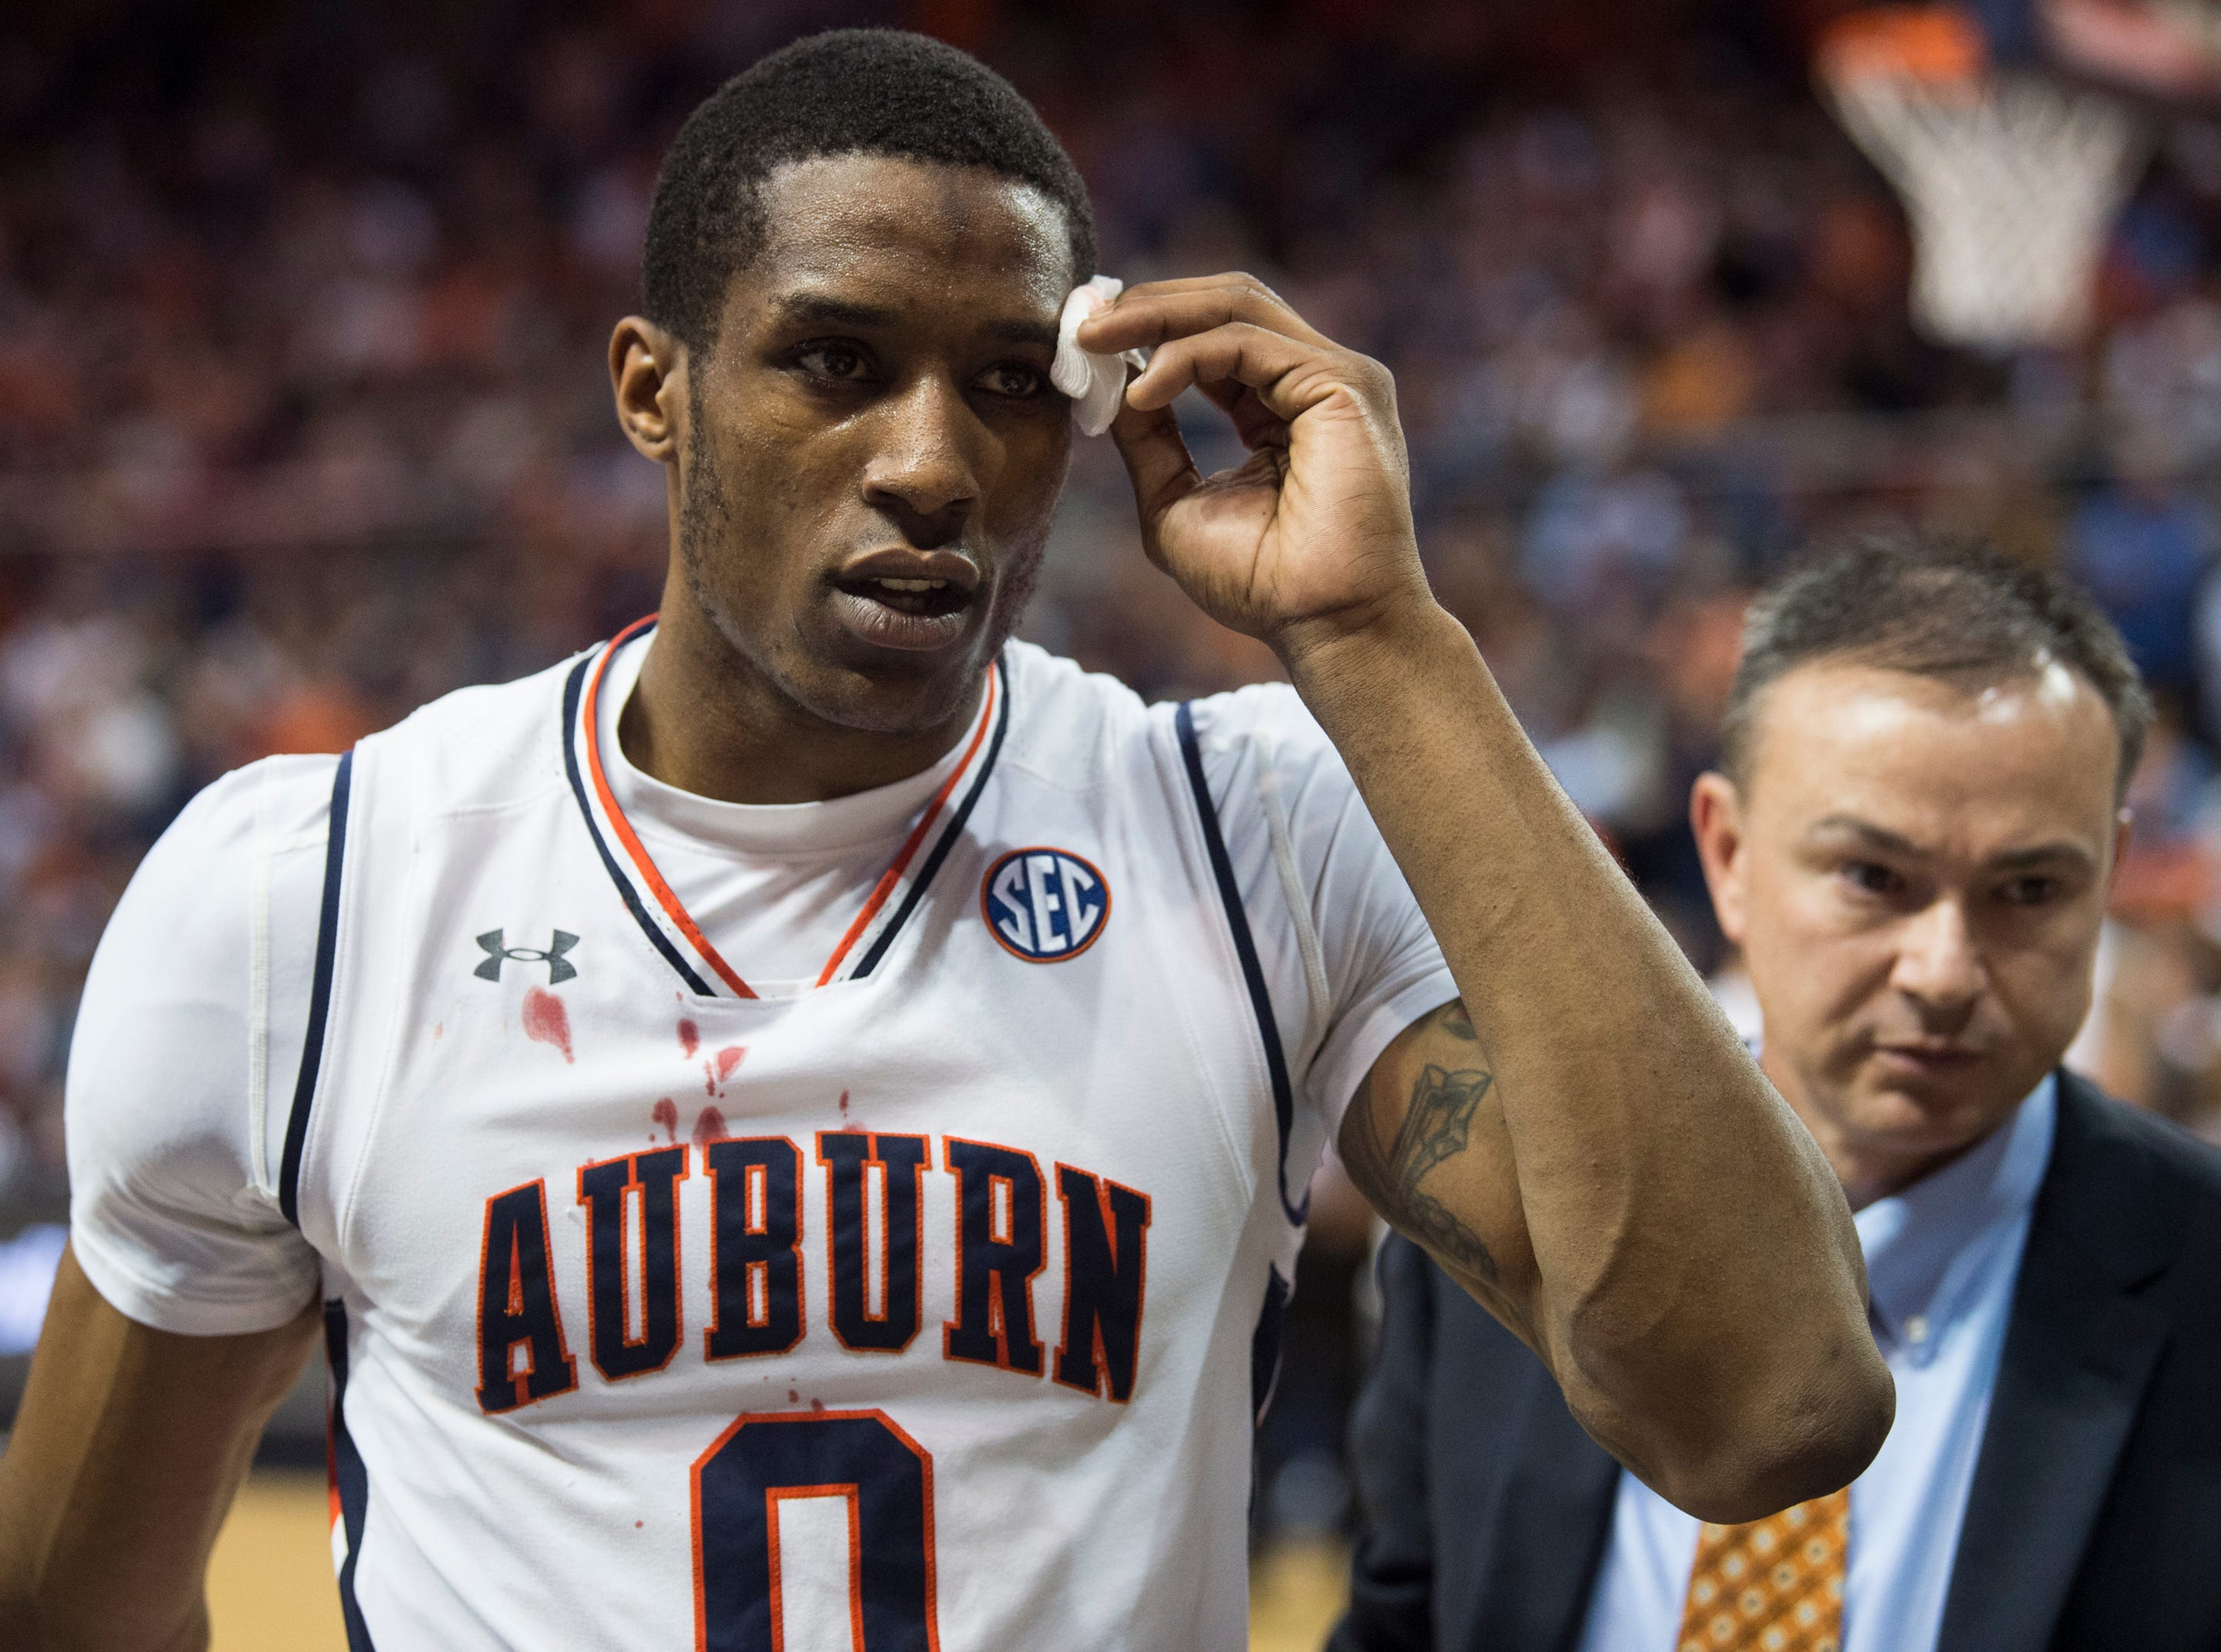 Auburn forward Horace Spencer (0) heads to the locker room with a head injury at Auburn Arena in Auburn, Ala., on Saturday, Jan. 19, 2019. Kentucky defeated Auburn 82-80.